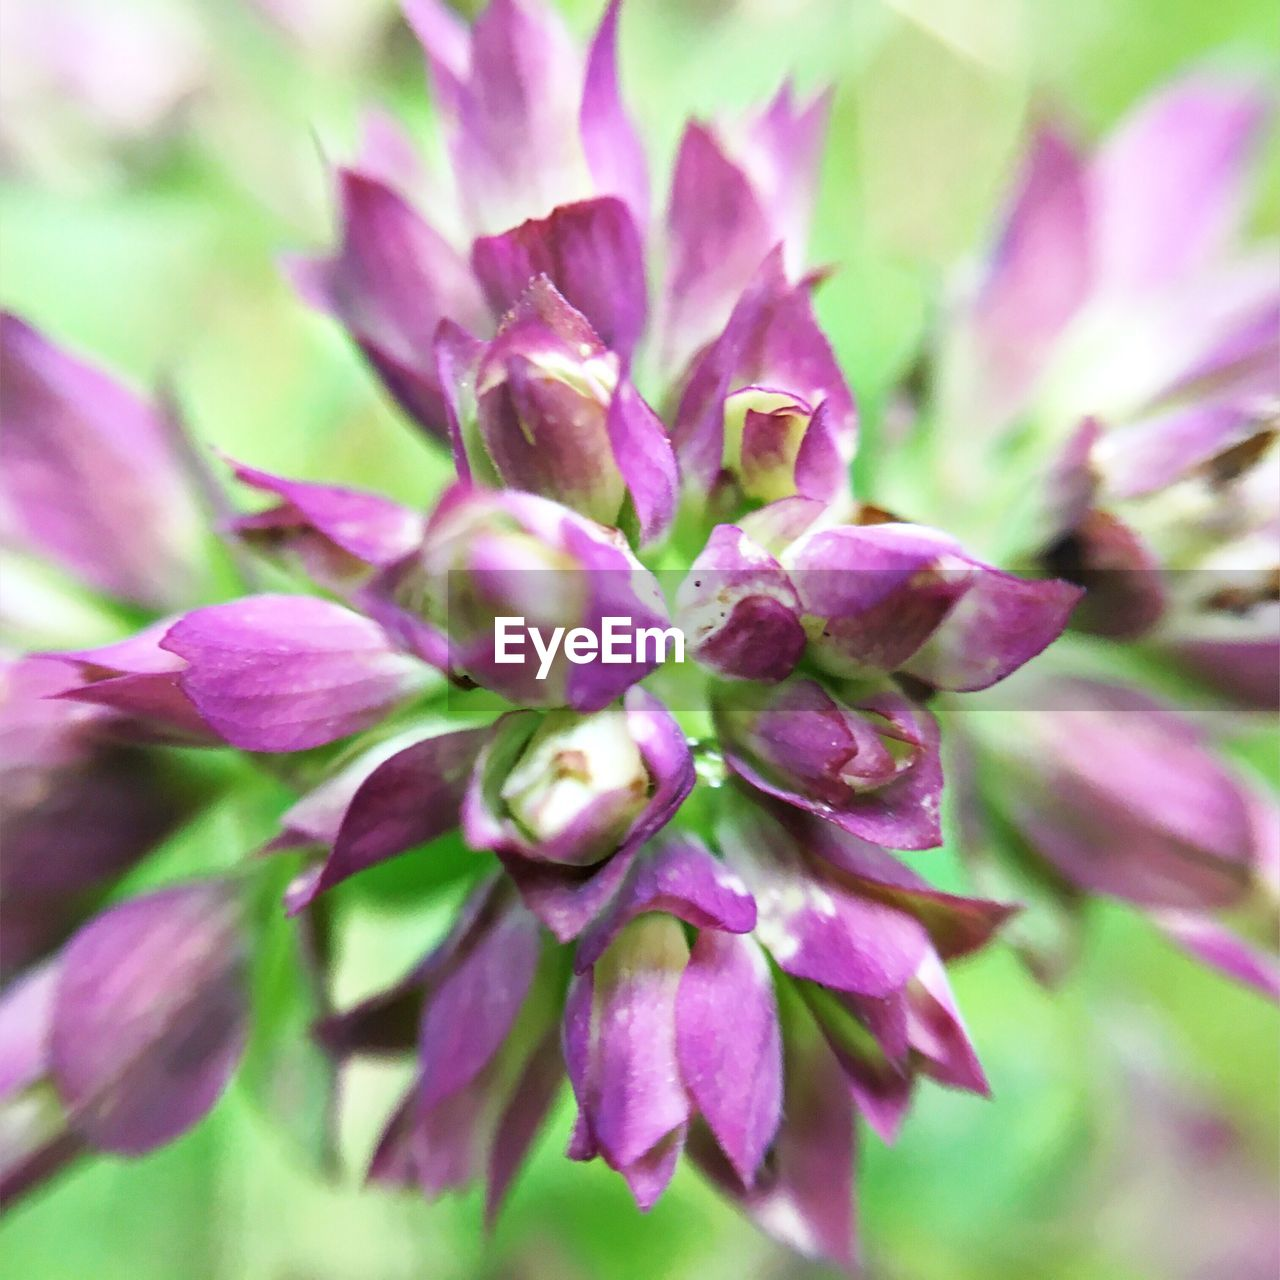 flower, nature, growth, purple, beauty in nature, plant, delicate, no people, outdoors, close-up, blooming, fragility, freshness, day